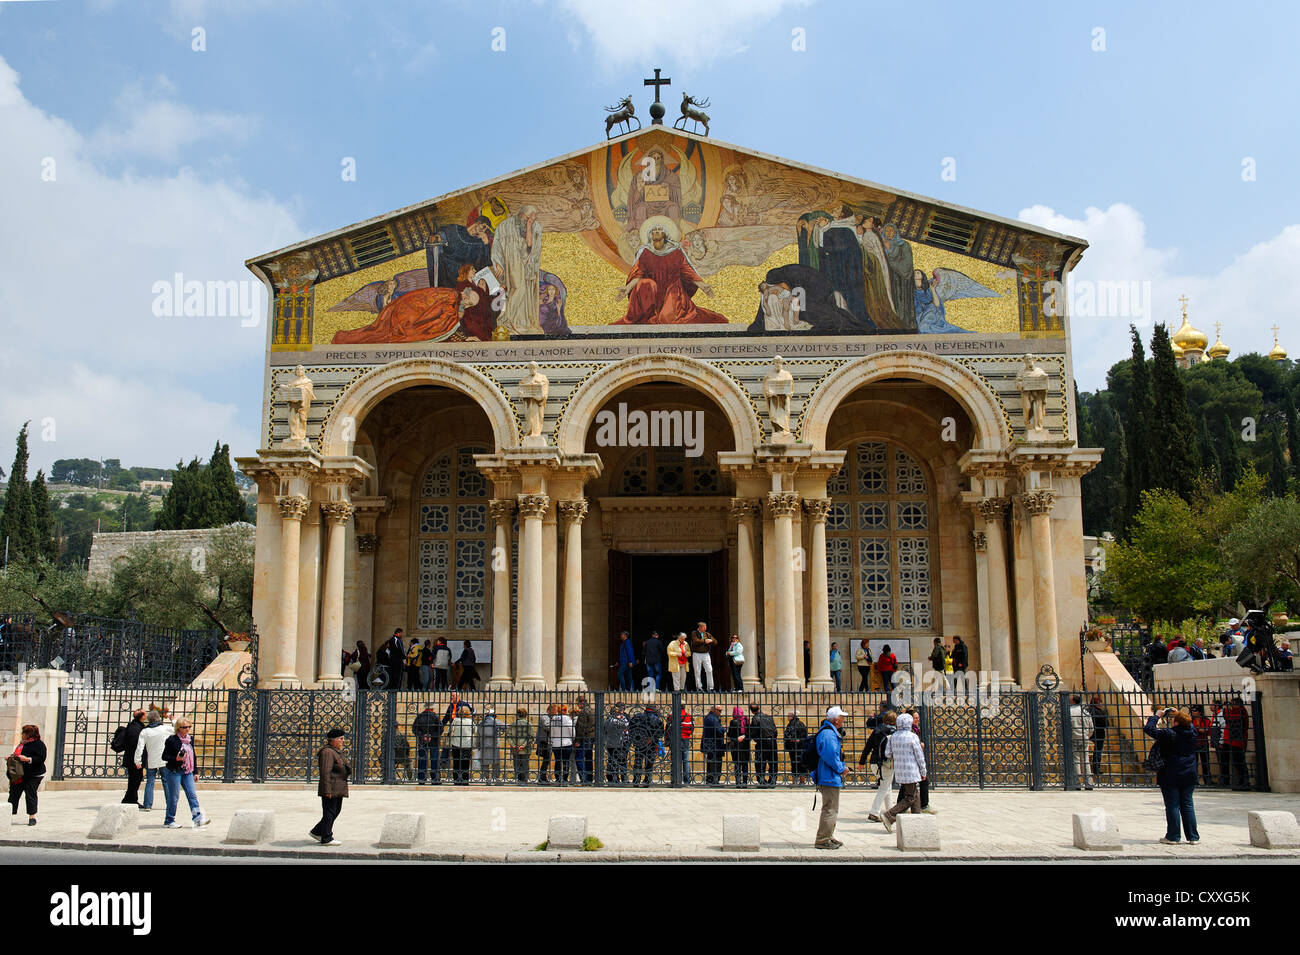 Church of All Nations, also known as Basilica of the Agony, Mount of Olives, Jerusalem, Israel, Middle East - Stock Image